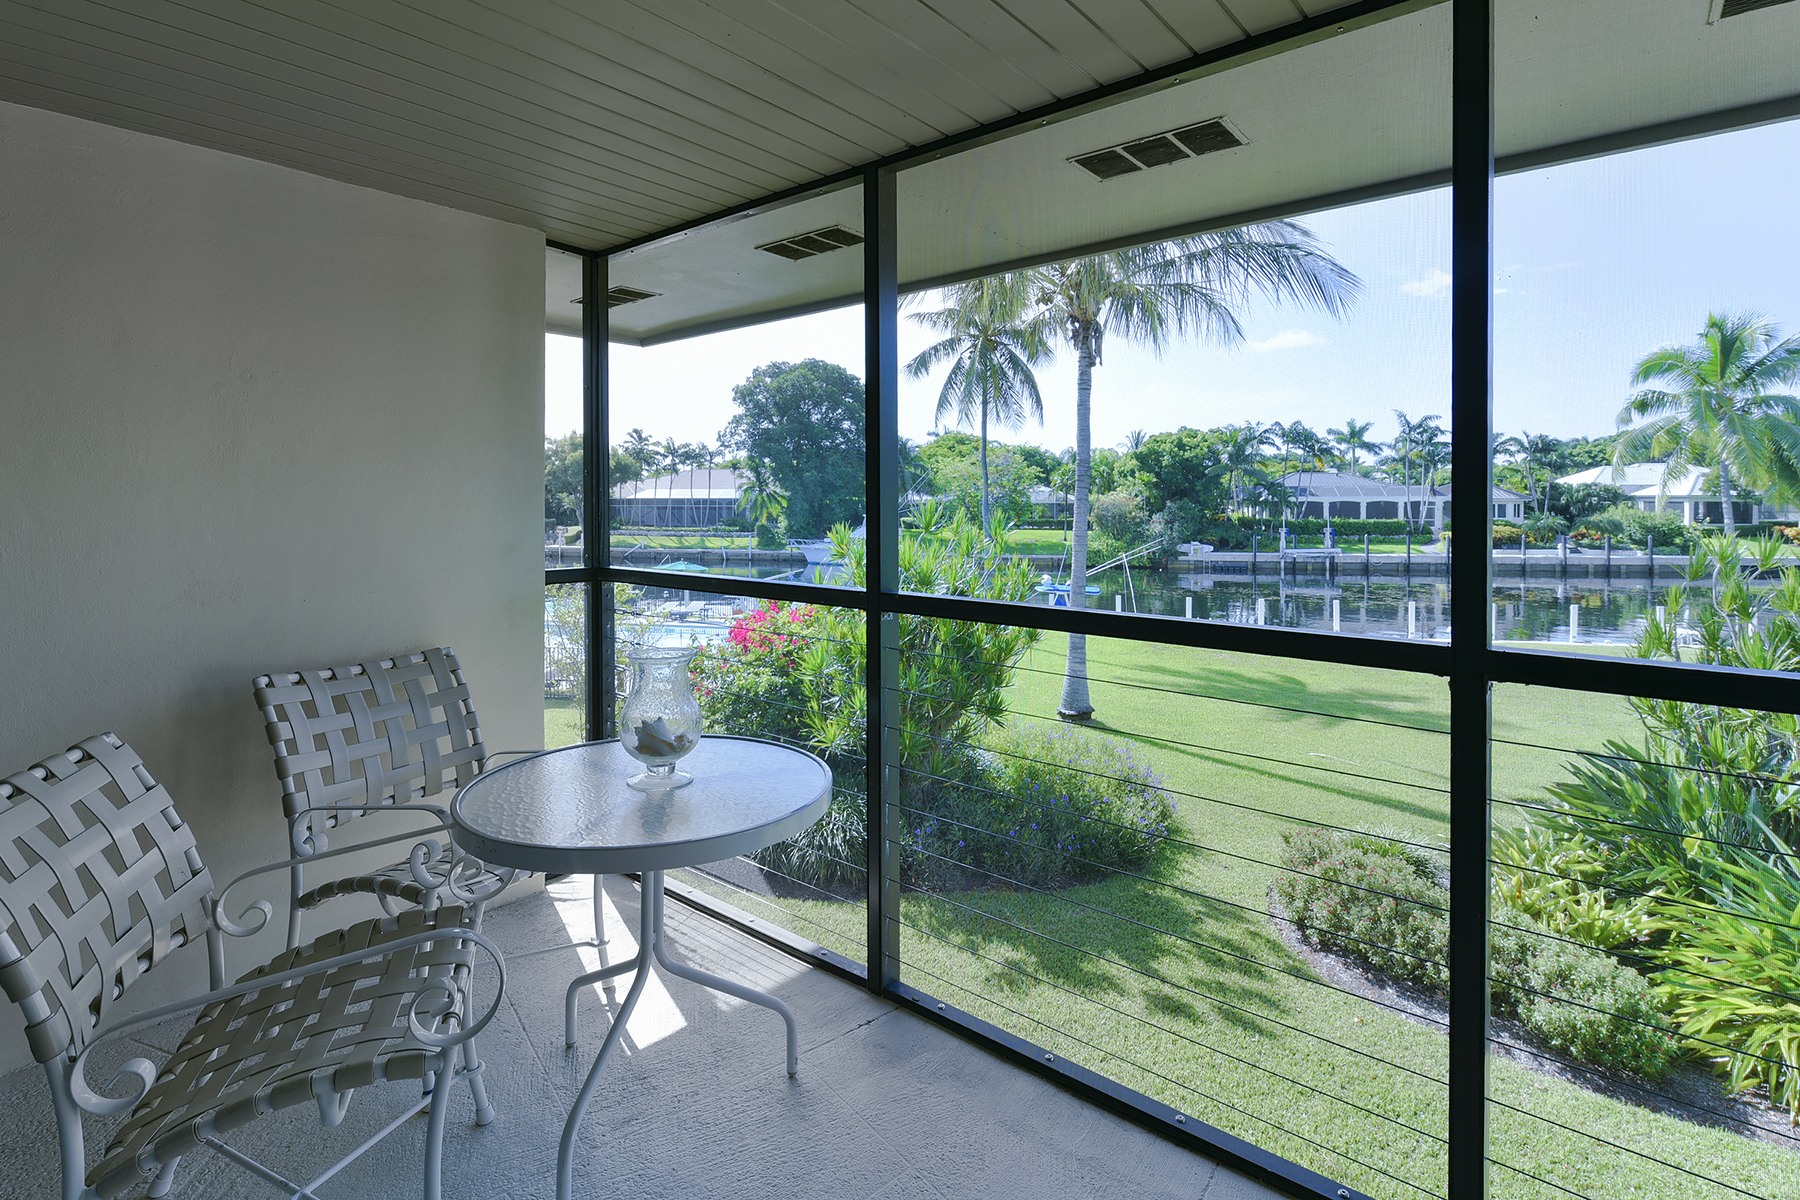 Copropriété pour l Vente à Waterfront Condominium at Ocean Reef 22 Anchor Drive, Unit B Ocean Reef Community, Key Largo, Florida, 33037 États-Unis